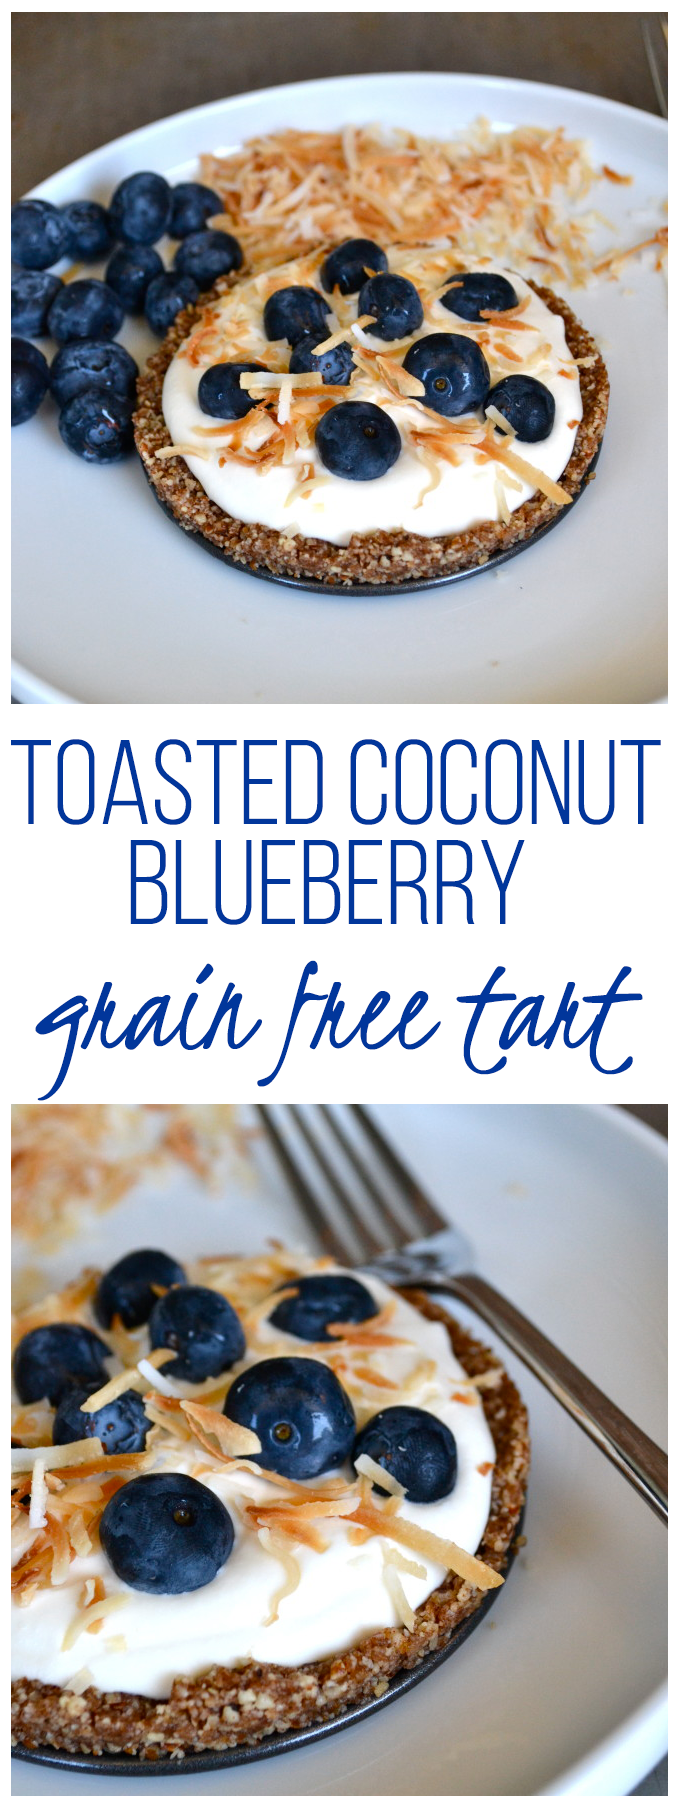 This Toasted Coconut Blueberry Grain Free Tart - a healthy gluten free dessert!